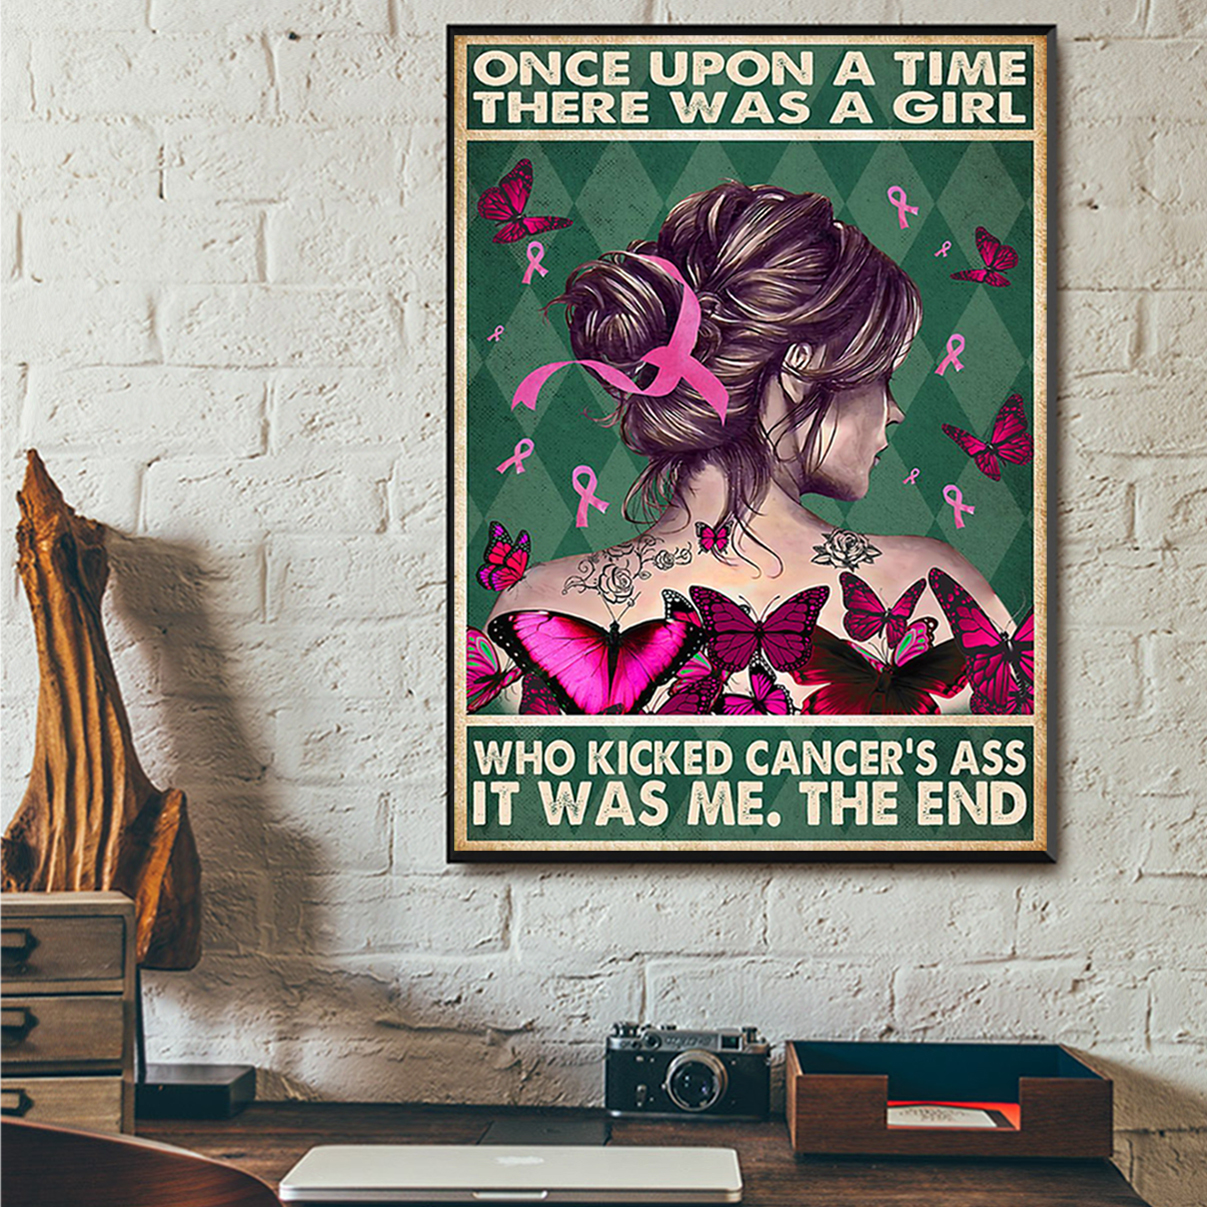 Once upon a time there was a girl who kicked cancer's ass poster A2